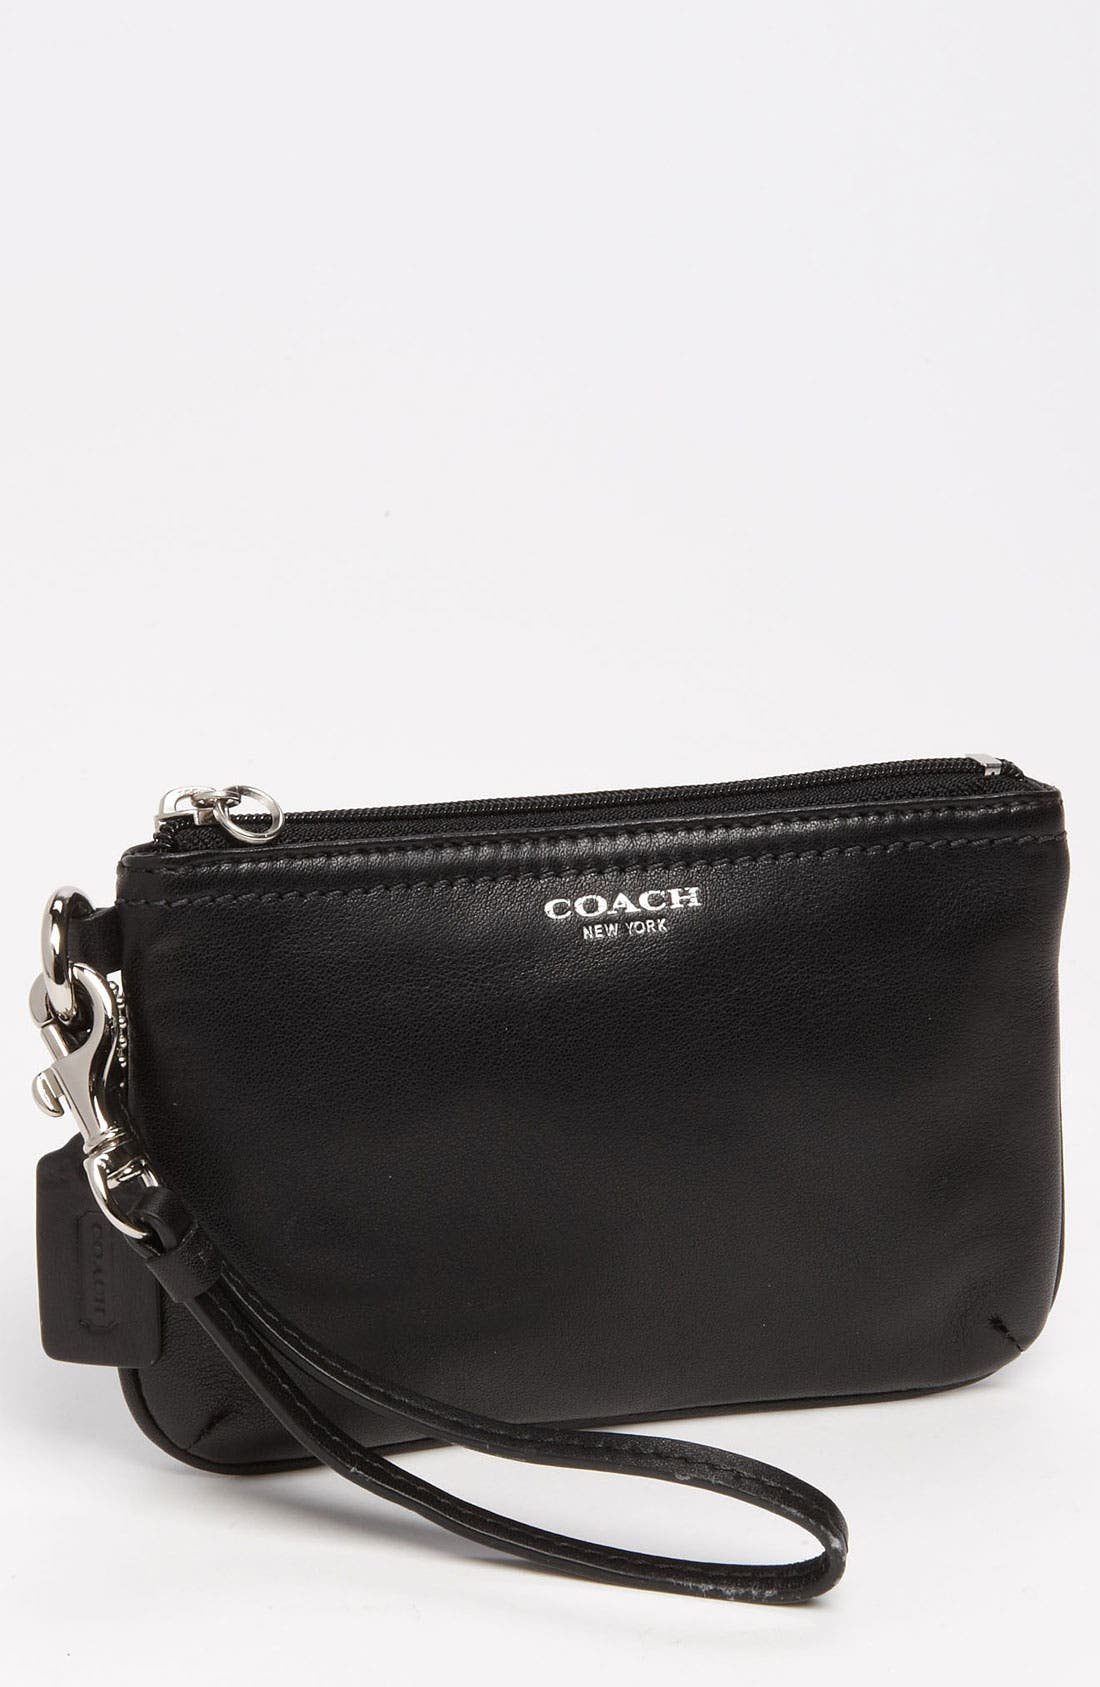 Alternate Image 1 Selected - COACH 'Legacy - Small' Leather Wristlet